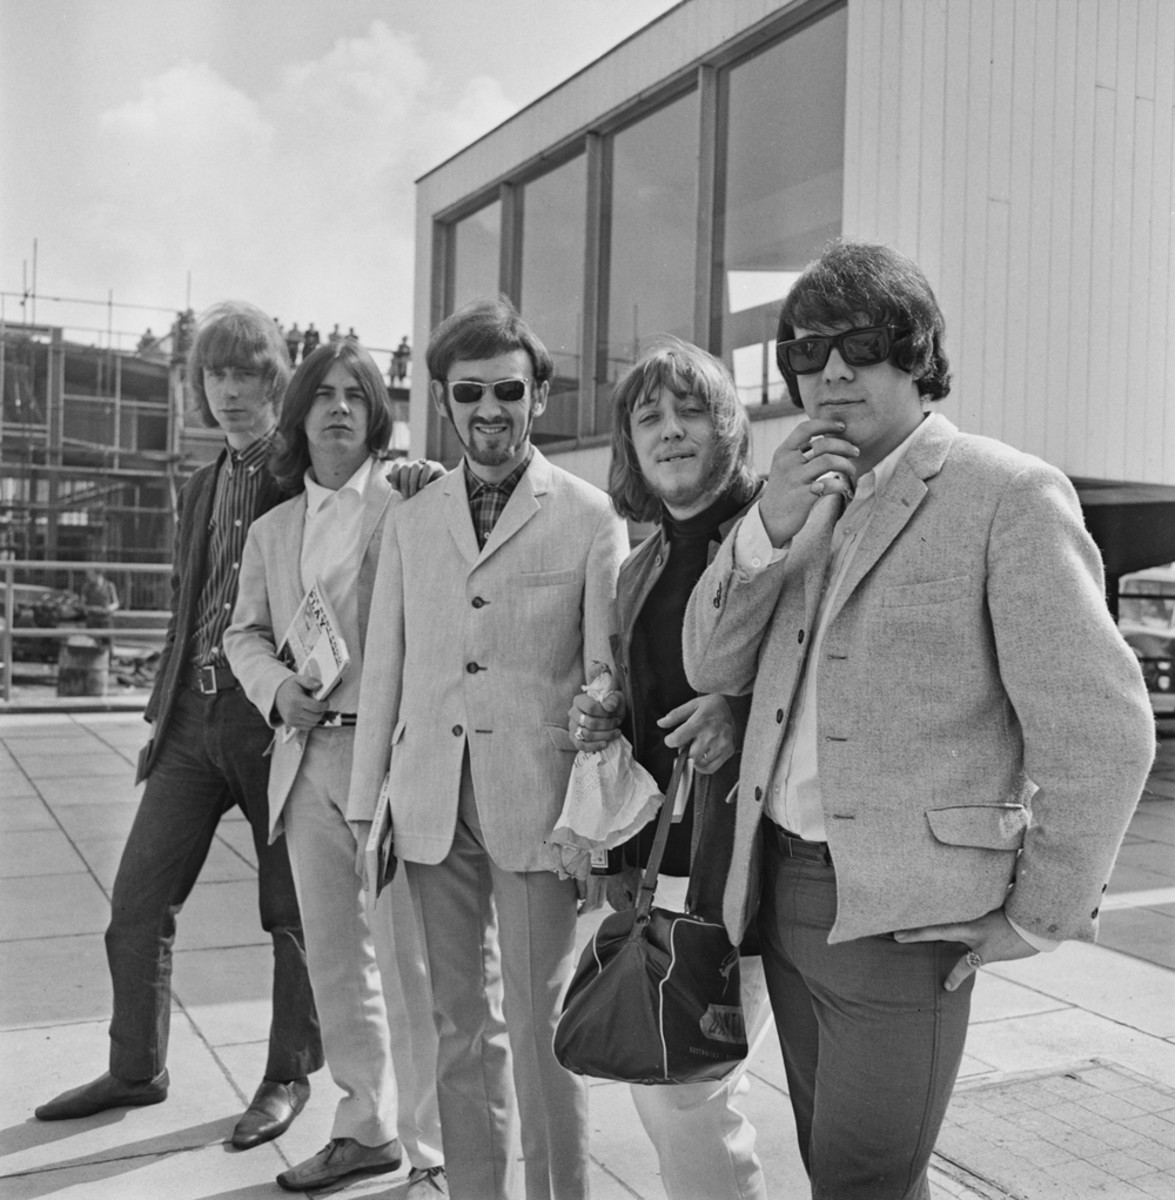 Pretty Things in 1965 (L-R): Guitarist Brian Pendleton, singer Phil May, guitarist Dick Taylor, drummer Viv Prince and bassist John Stax. Photo by M. Stroud/Express/Hulton Archive/Getty Images.